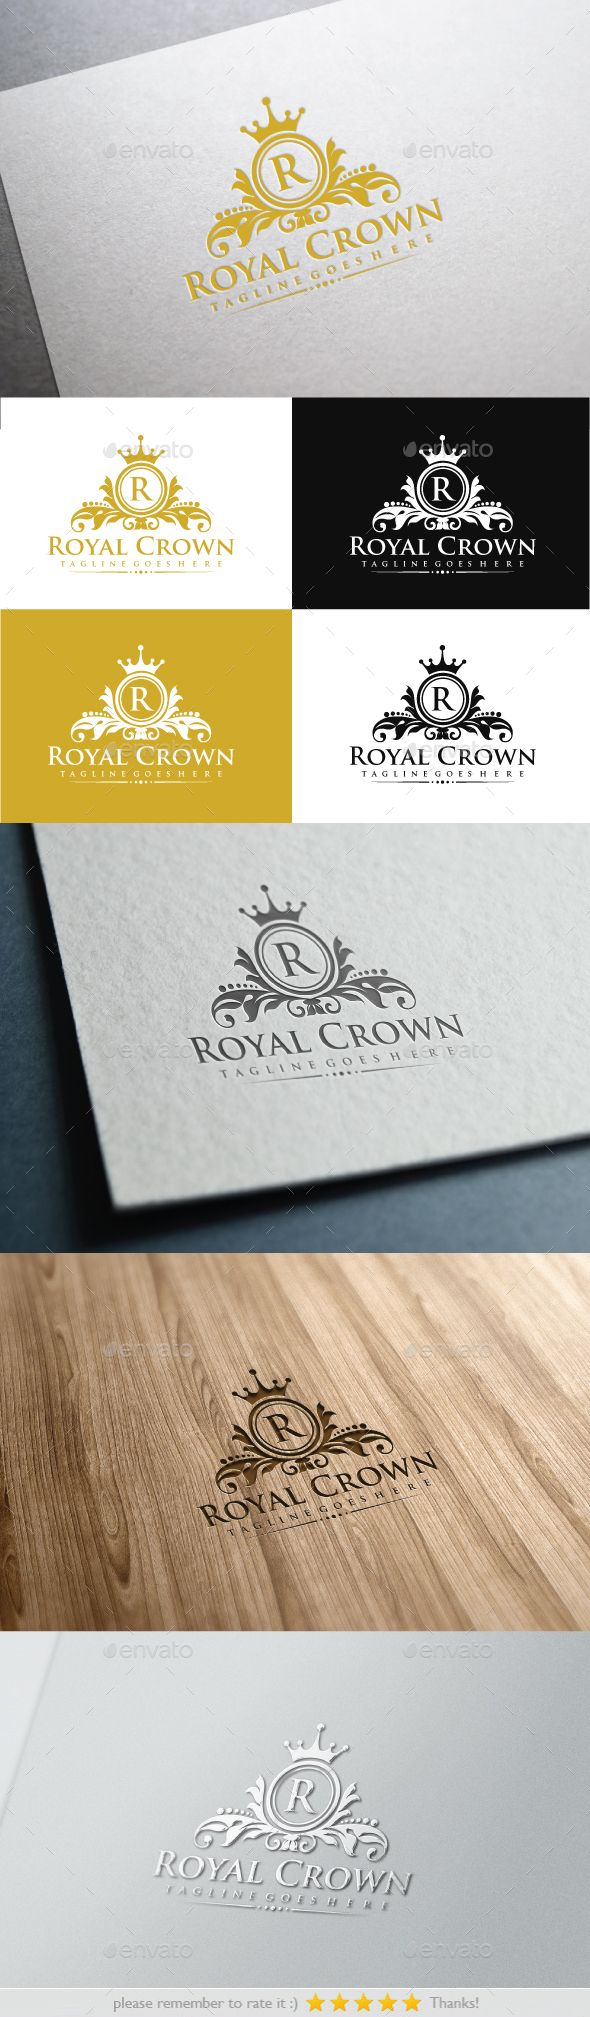 Royal Crown — Transparent PNG #royal #ring • Available here → https://graphicriver.net/item/royal-crown/10050440?ref=pxcr